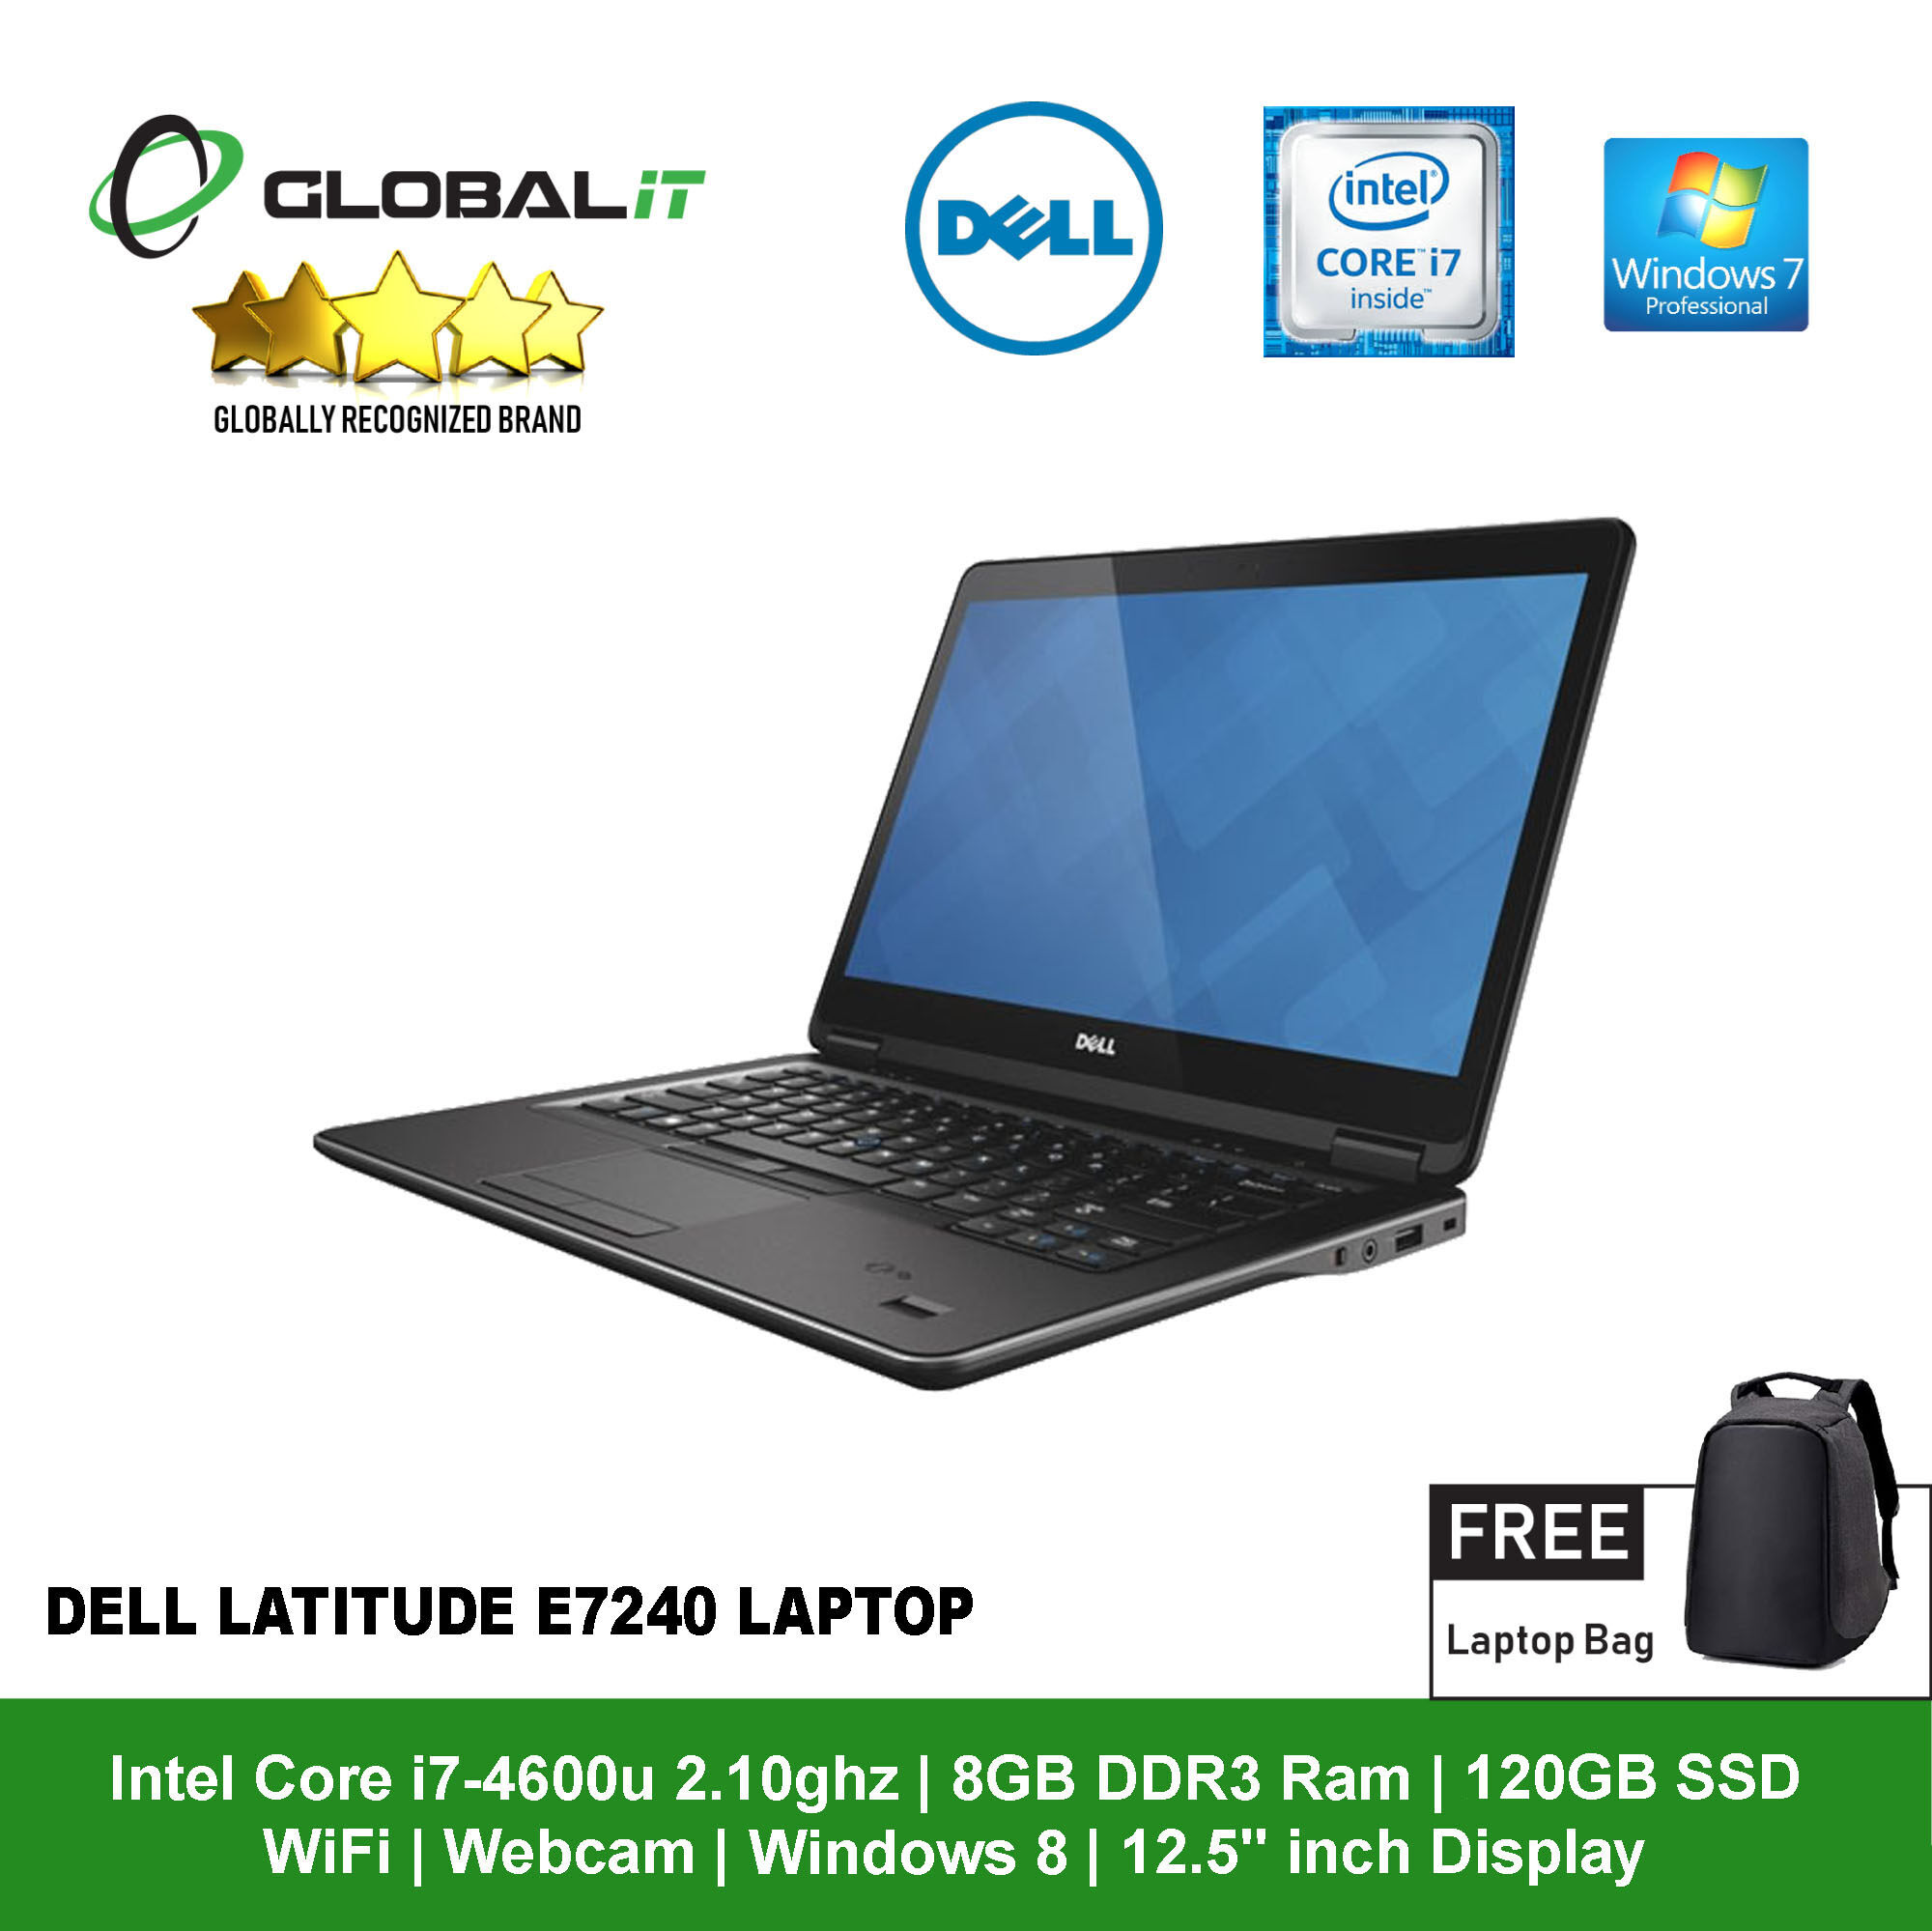 (Refurbished Notebook) Dell Latitude E7240 Laptop / 12.5 inch LCD / Intel Core i7-4600U / 8GB DDR3 Ram / 120GB SSD / WiFi / Windows 7 Professional / Webcam Malaysia